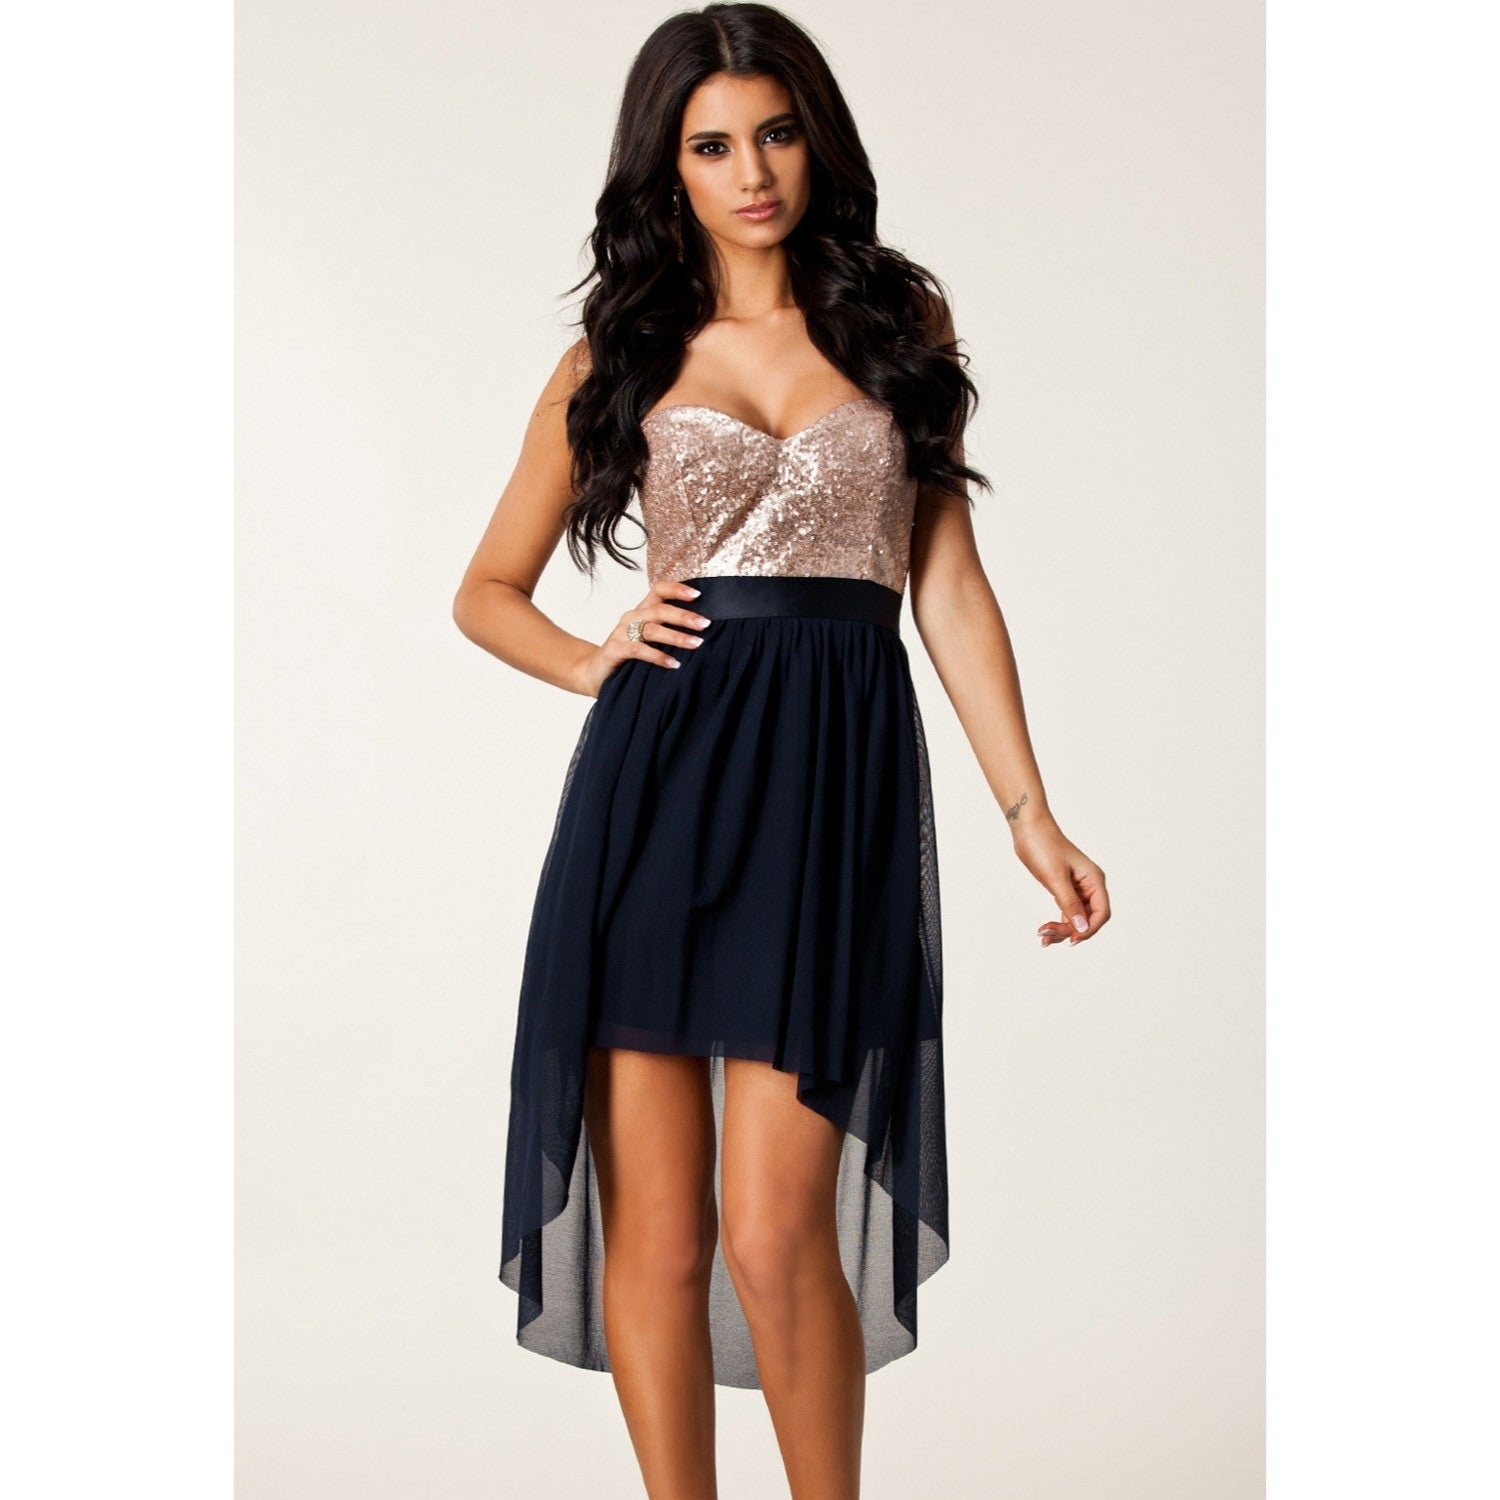 Navy Nude Sequin High Low Cocktail Dress 6254 - IBL Fashion - 3